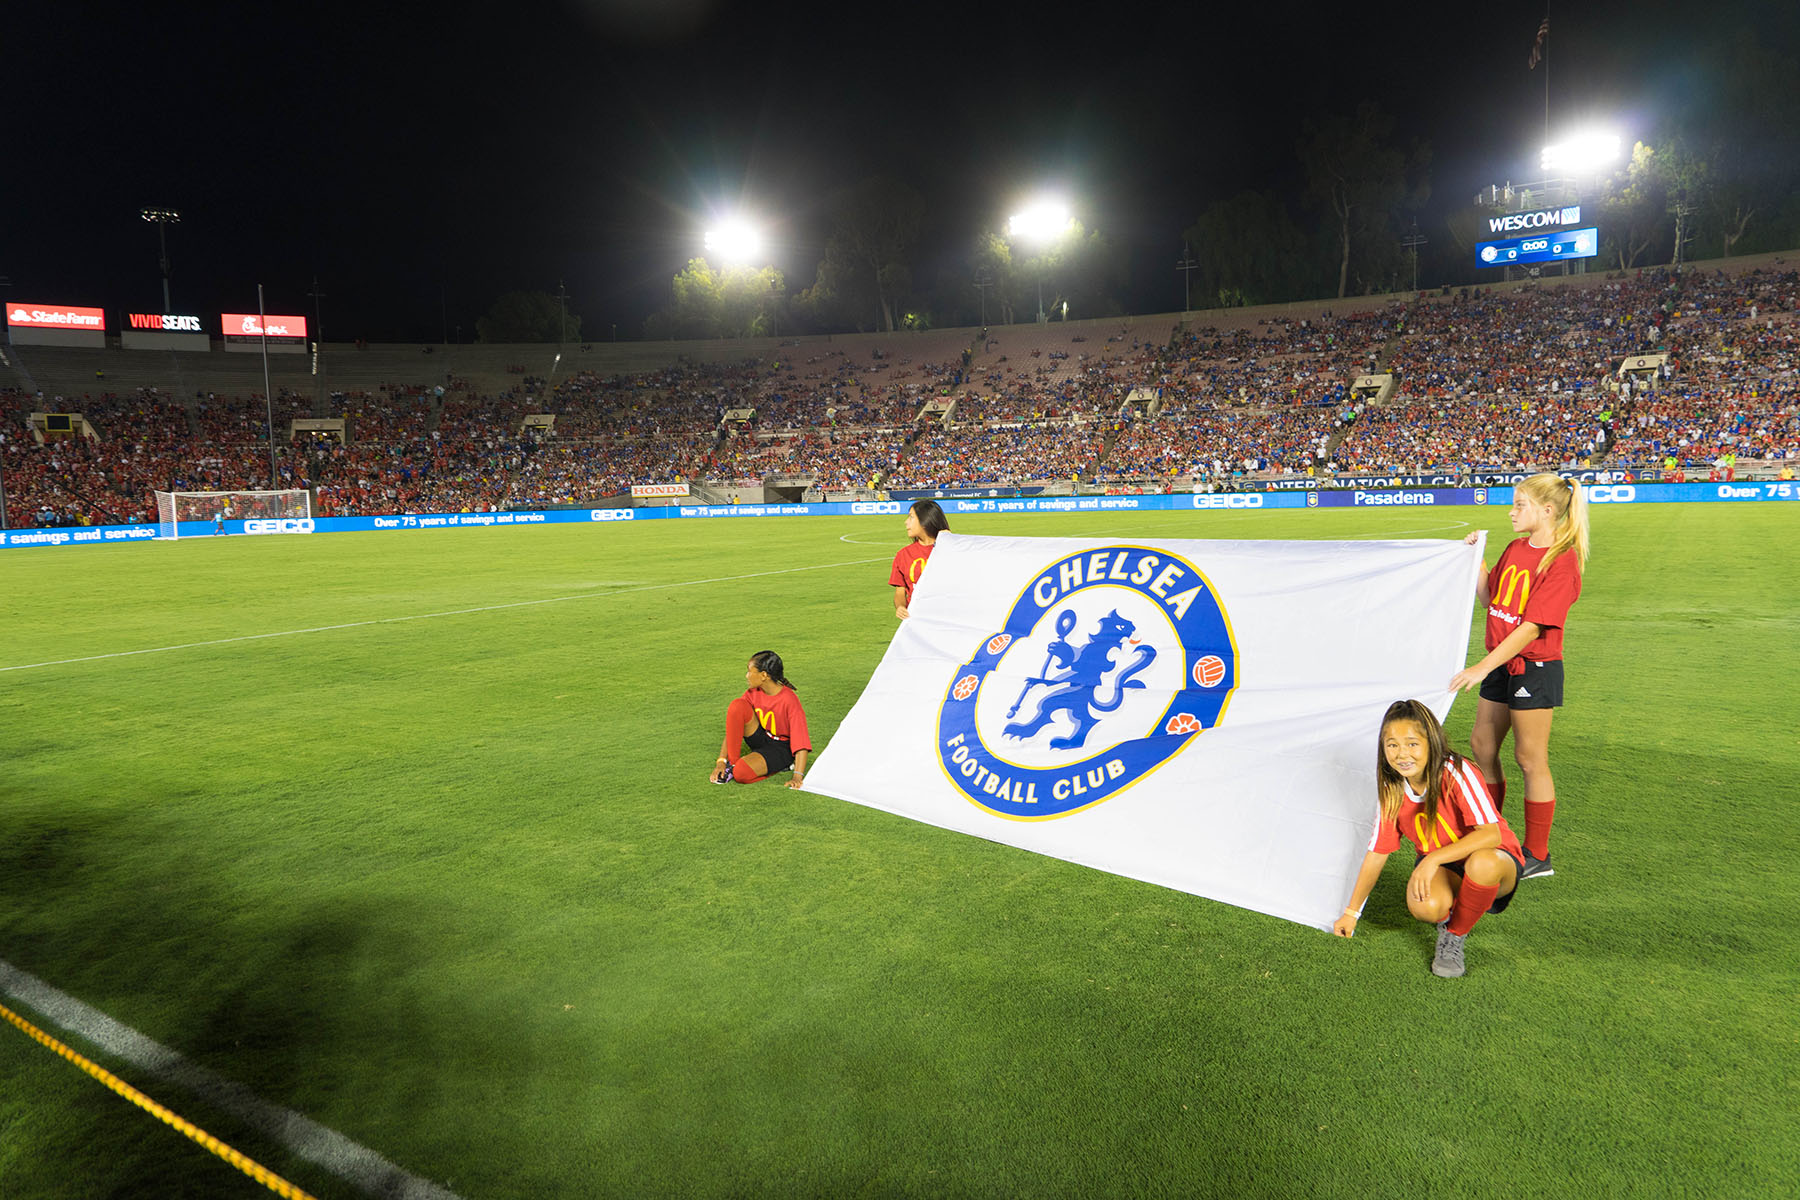 Chelsea v Liverpool - Sony SD Card (2 of 2).jpg